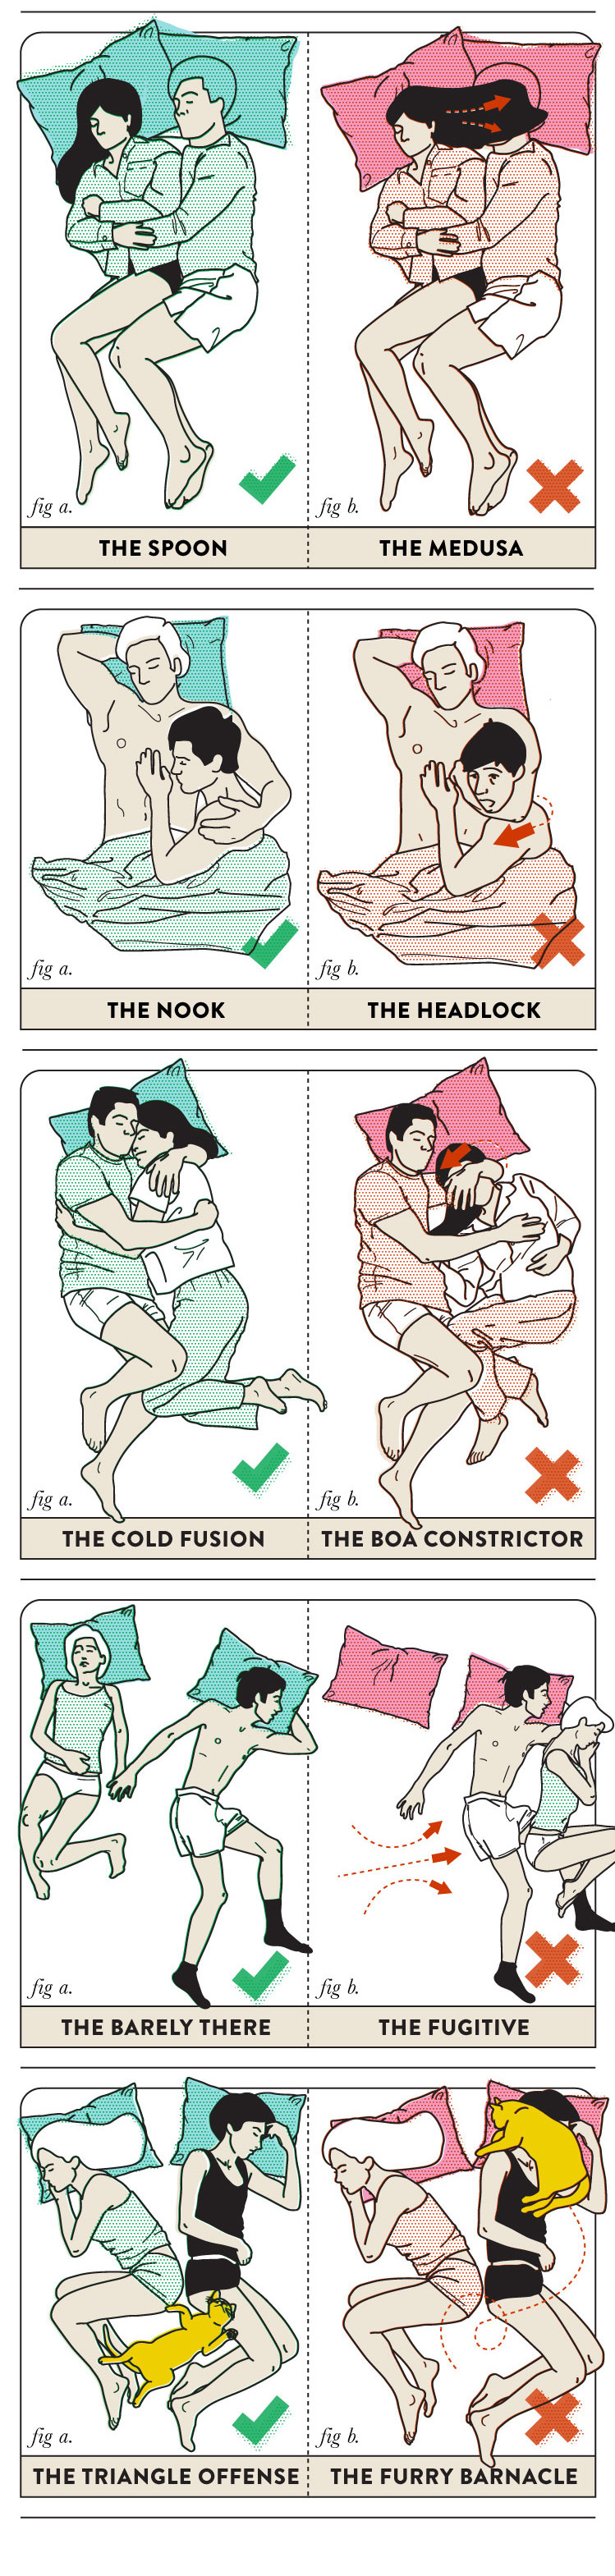 Sleep_Positions_final-copy